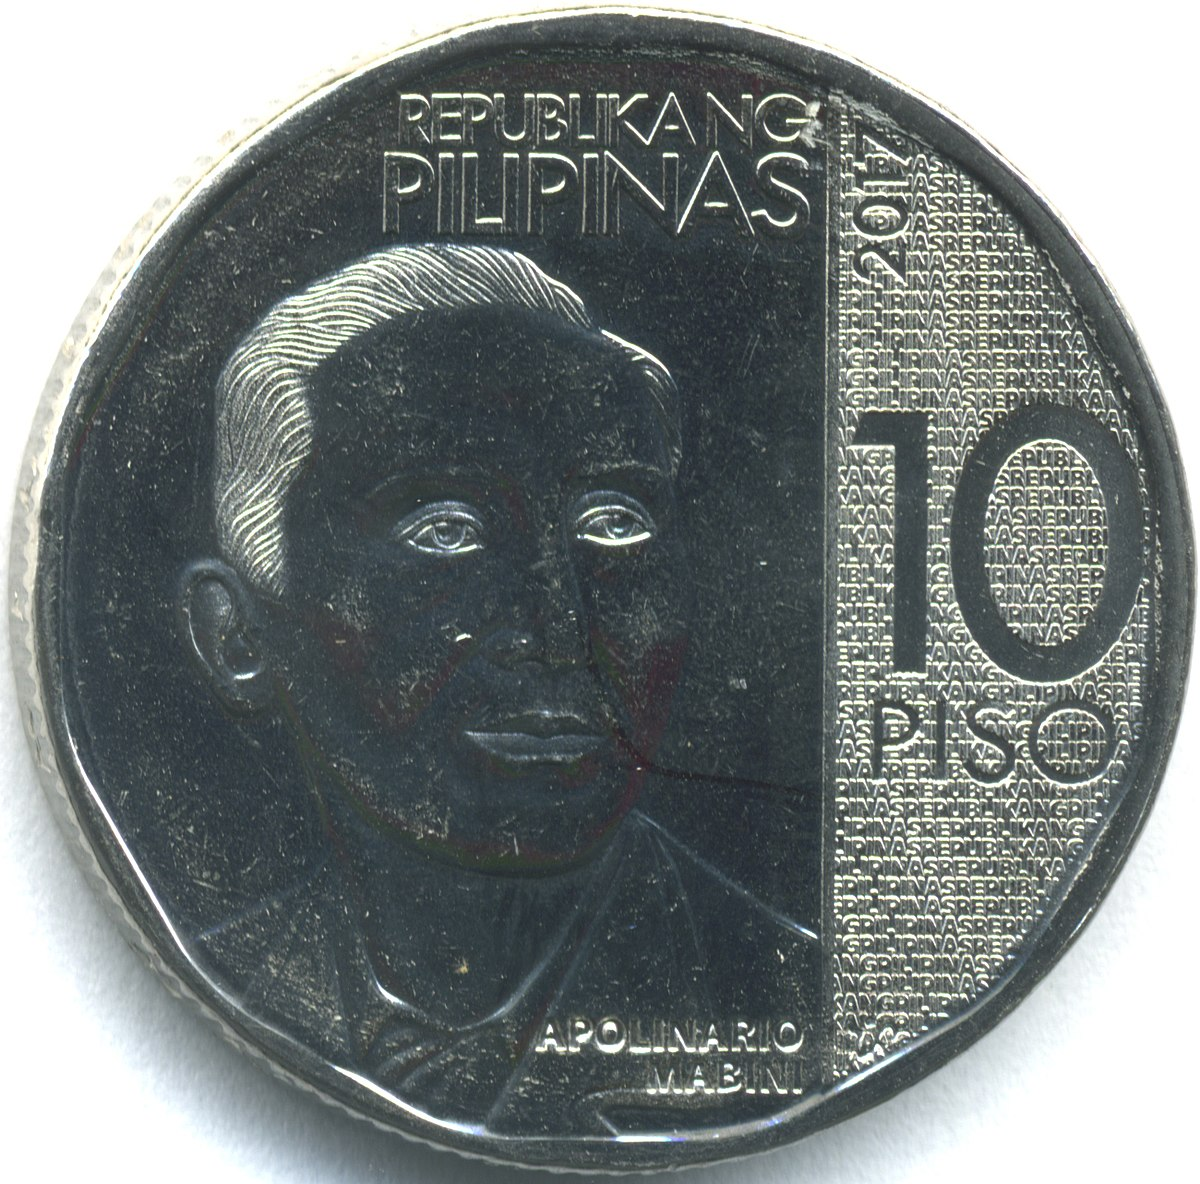 Coin Ph: Philippine Ten Peso Coin